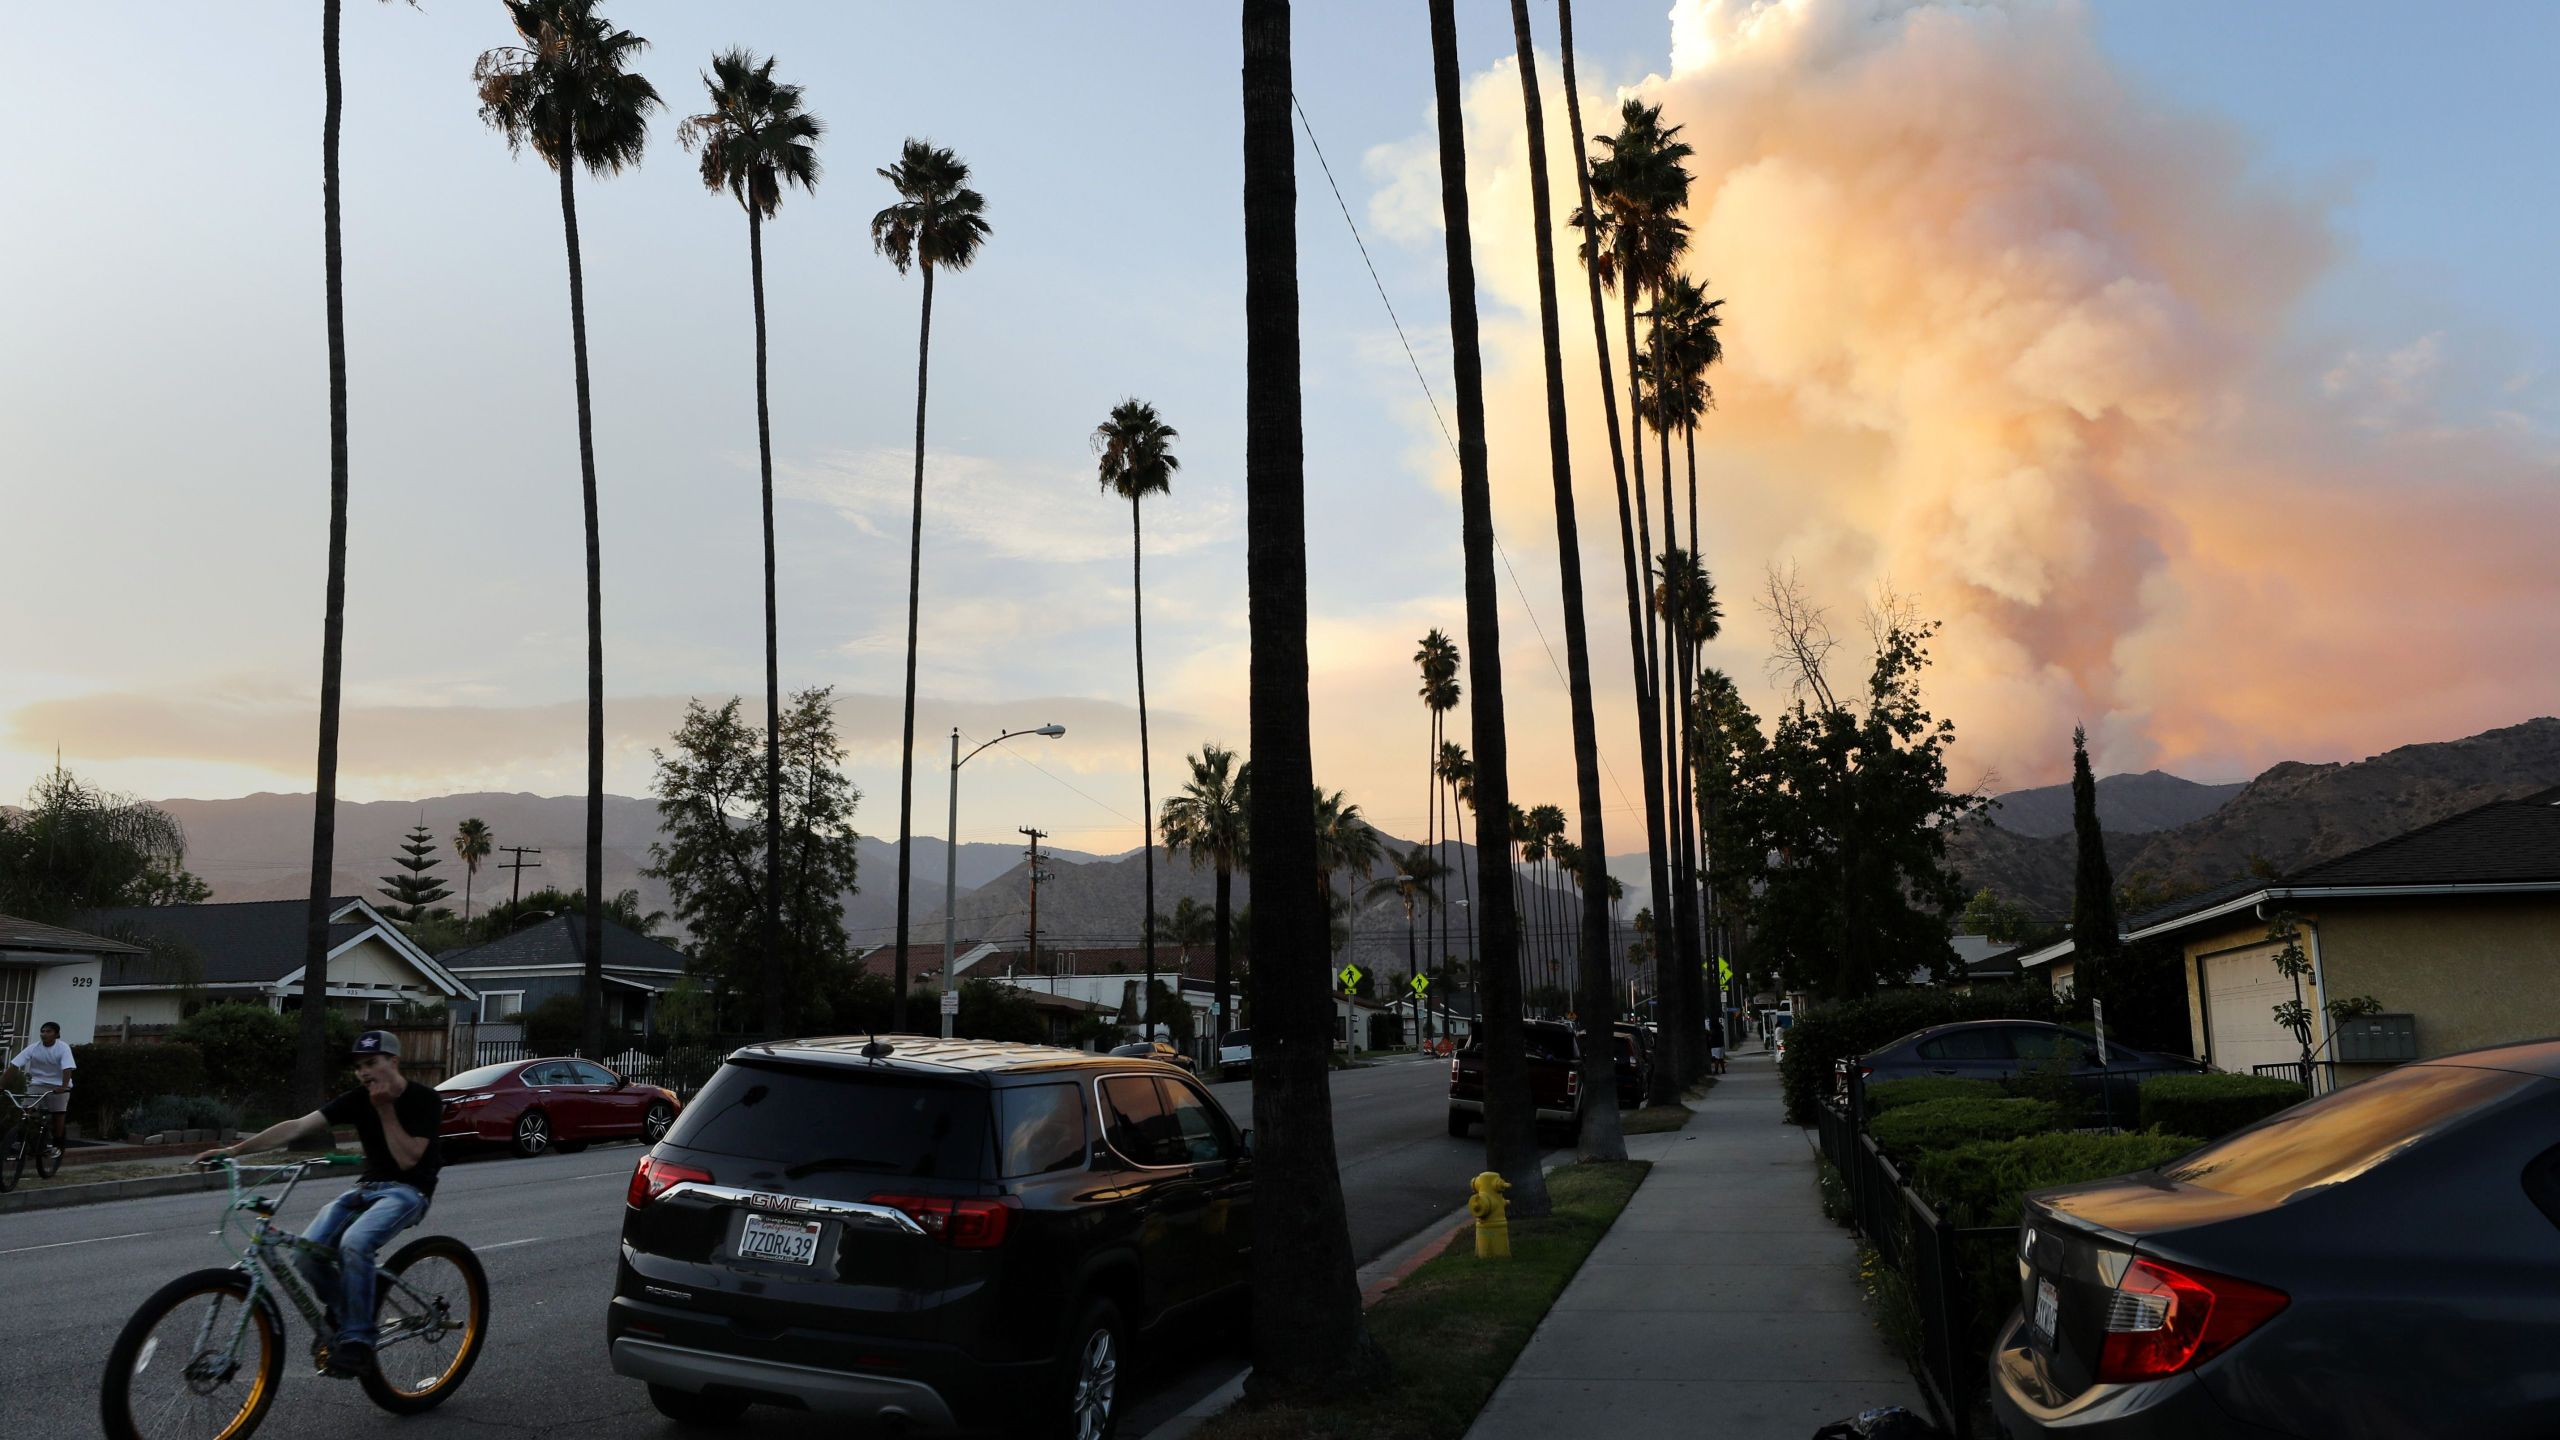 A plume of smoke rises from the Ranch 2 Fire on Aug. 15, 2020 in Azusa. (Mario Tama/Getty Images)